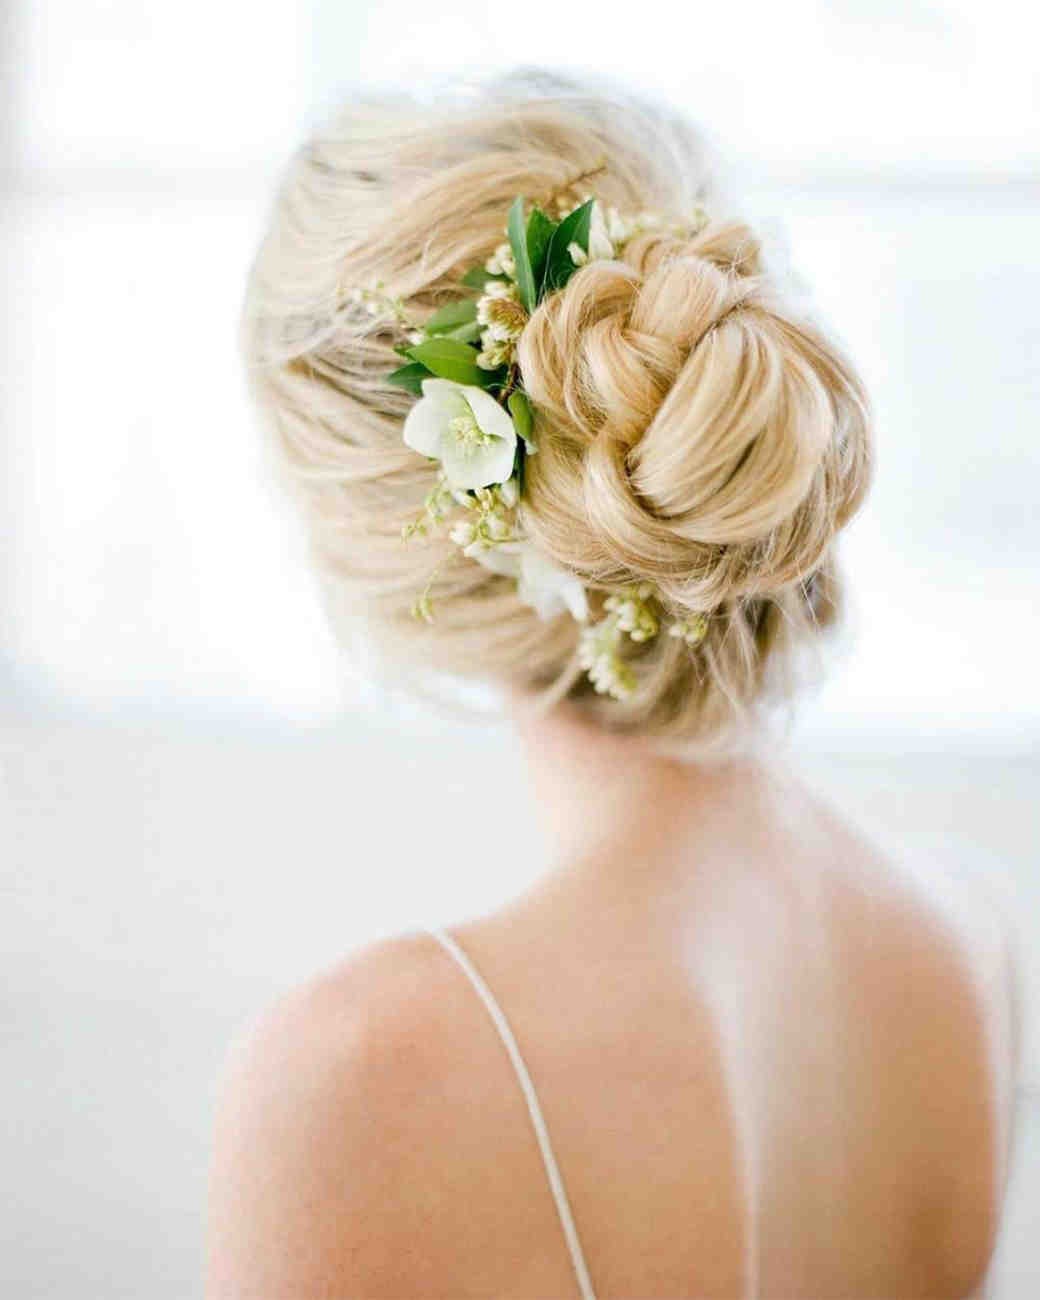 Wedding Hairstyle Flowers: 20 Wedding Hairstyles With Flowers